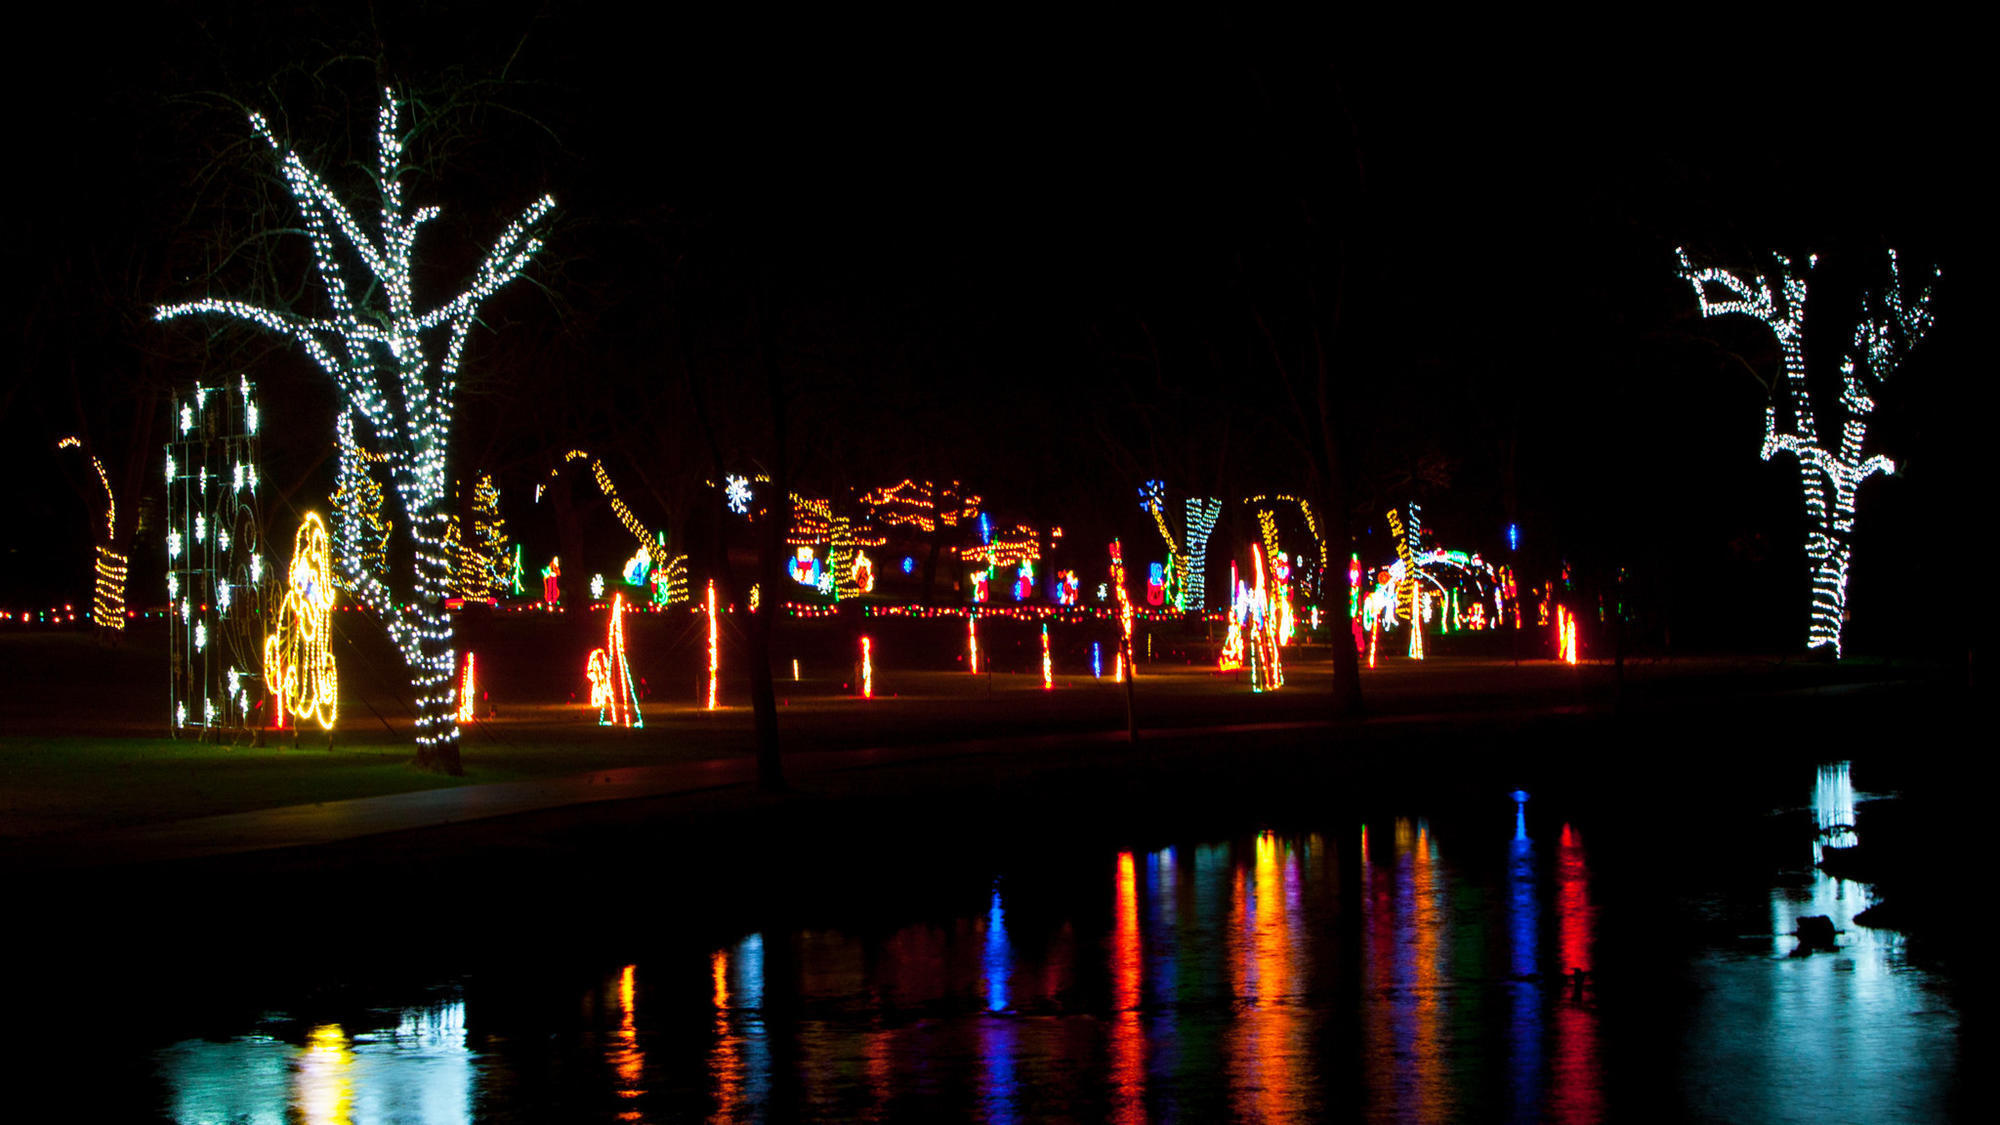 Lehigh Valley Holiday Events 13 Great Options The